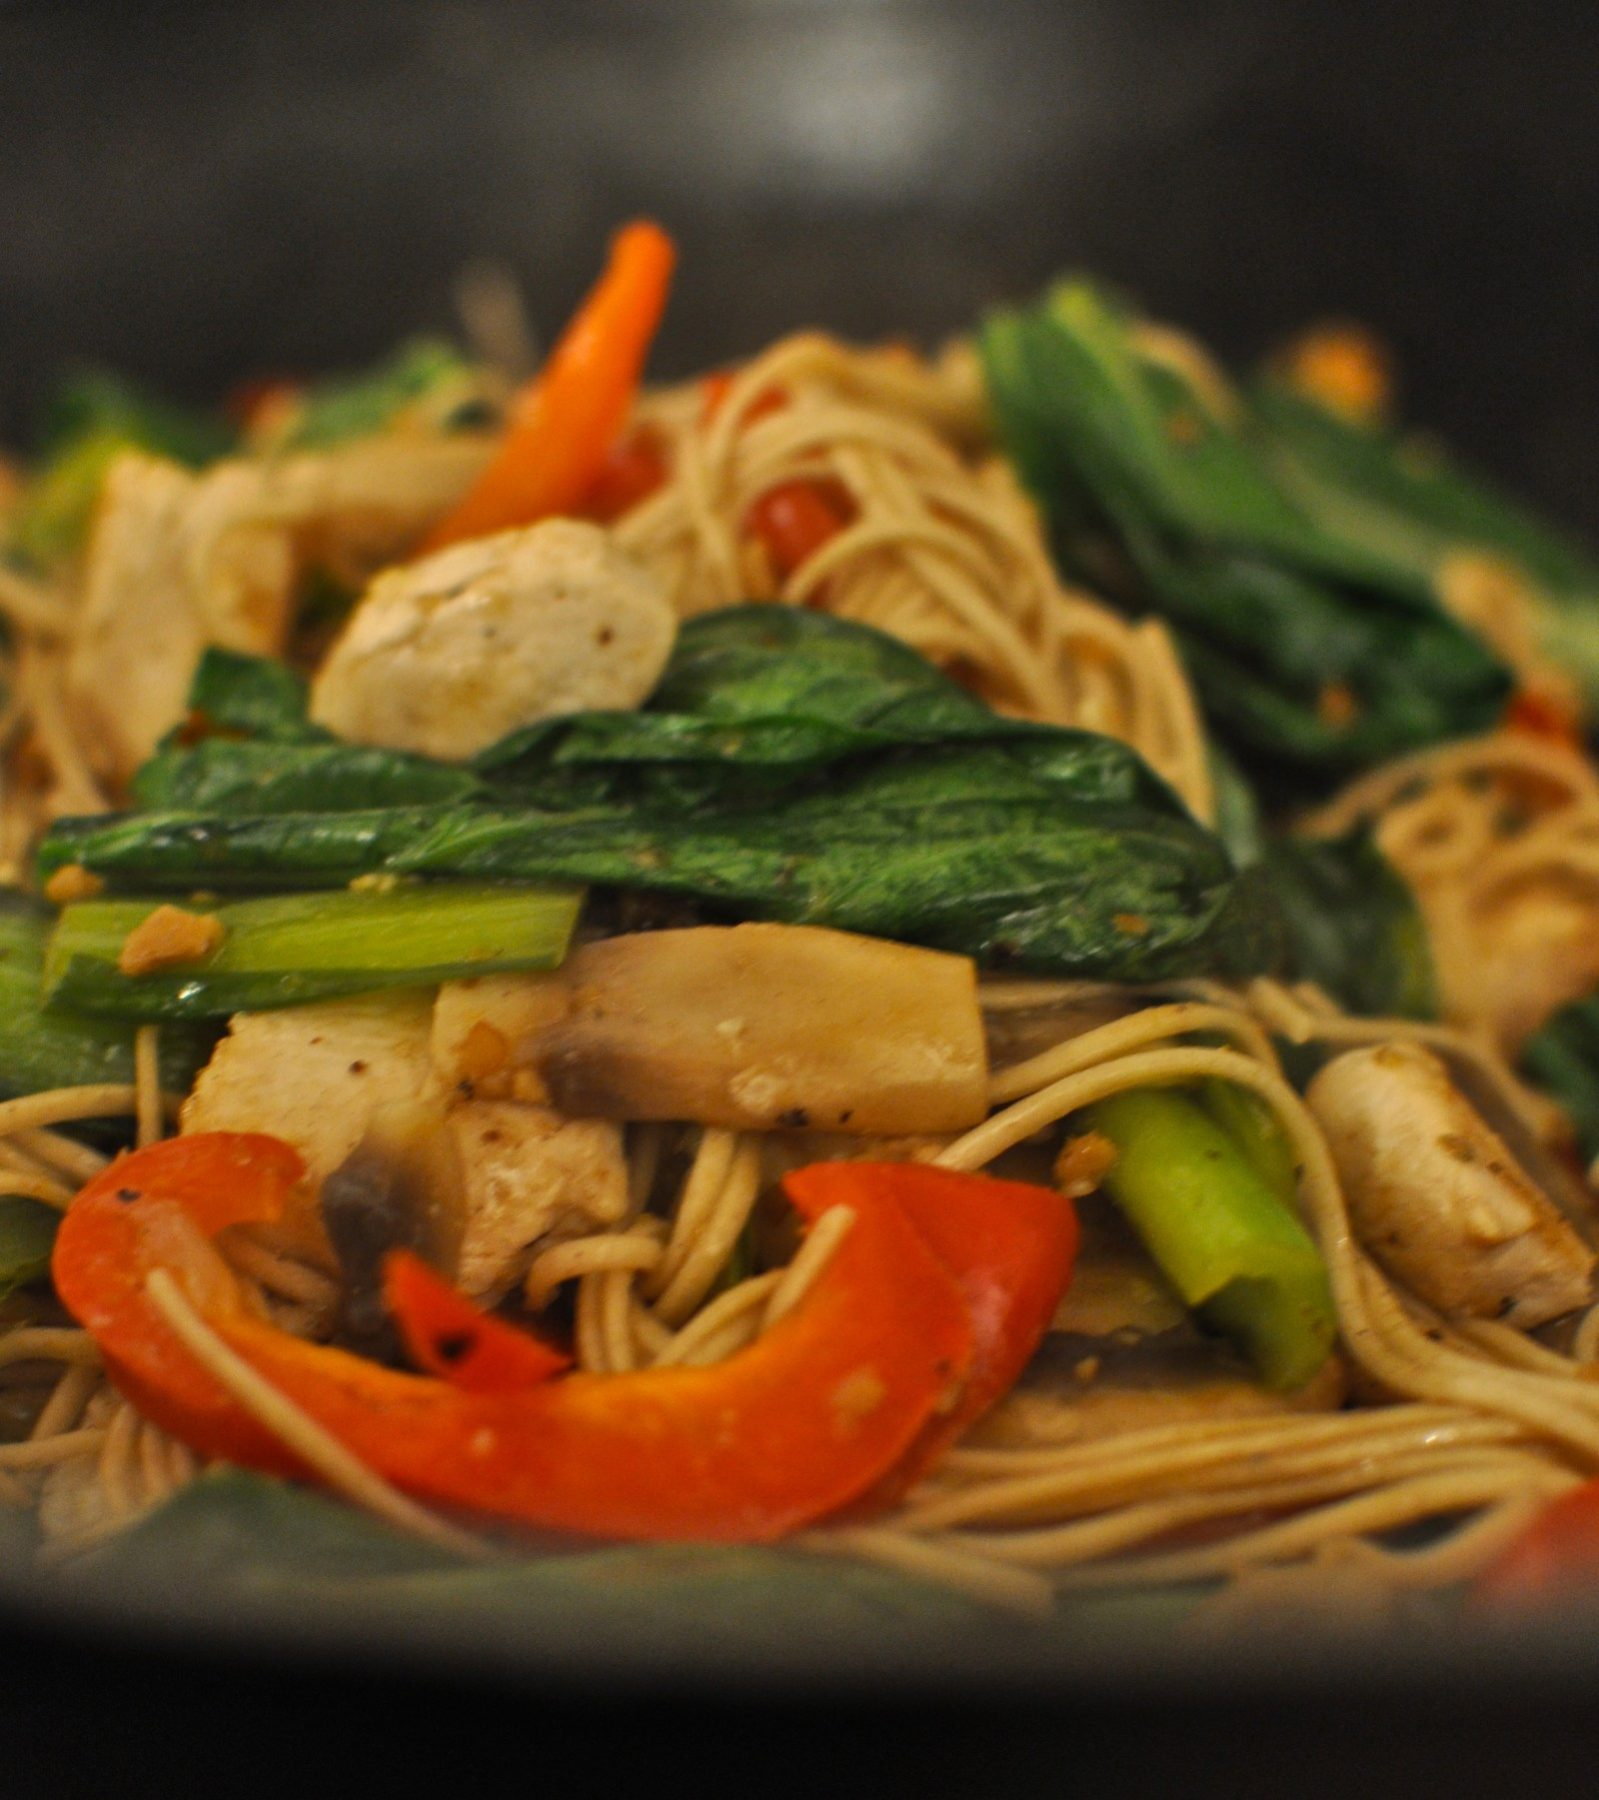 Stir-fried veges with chicken and soba noodles